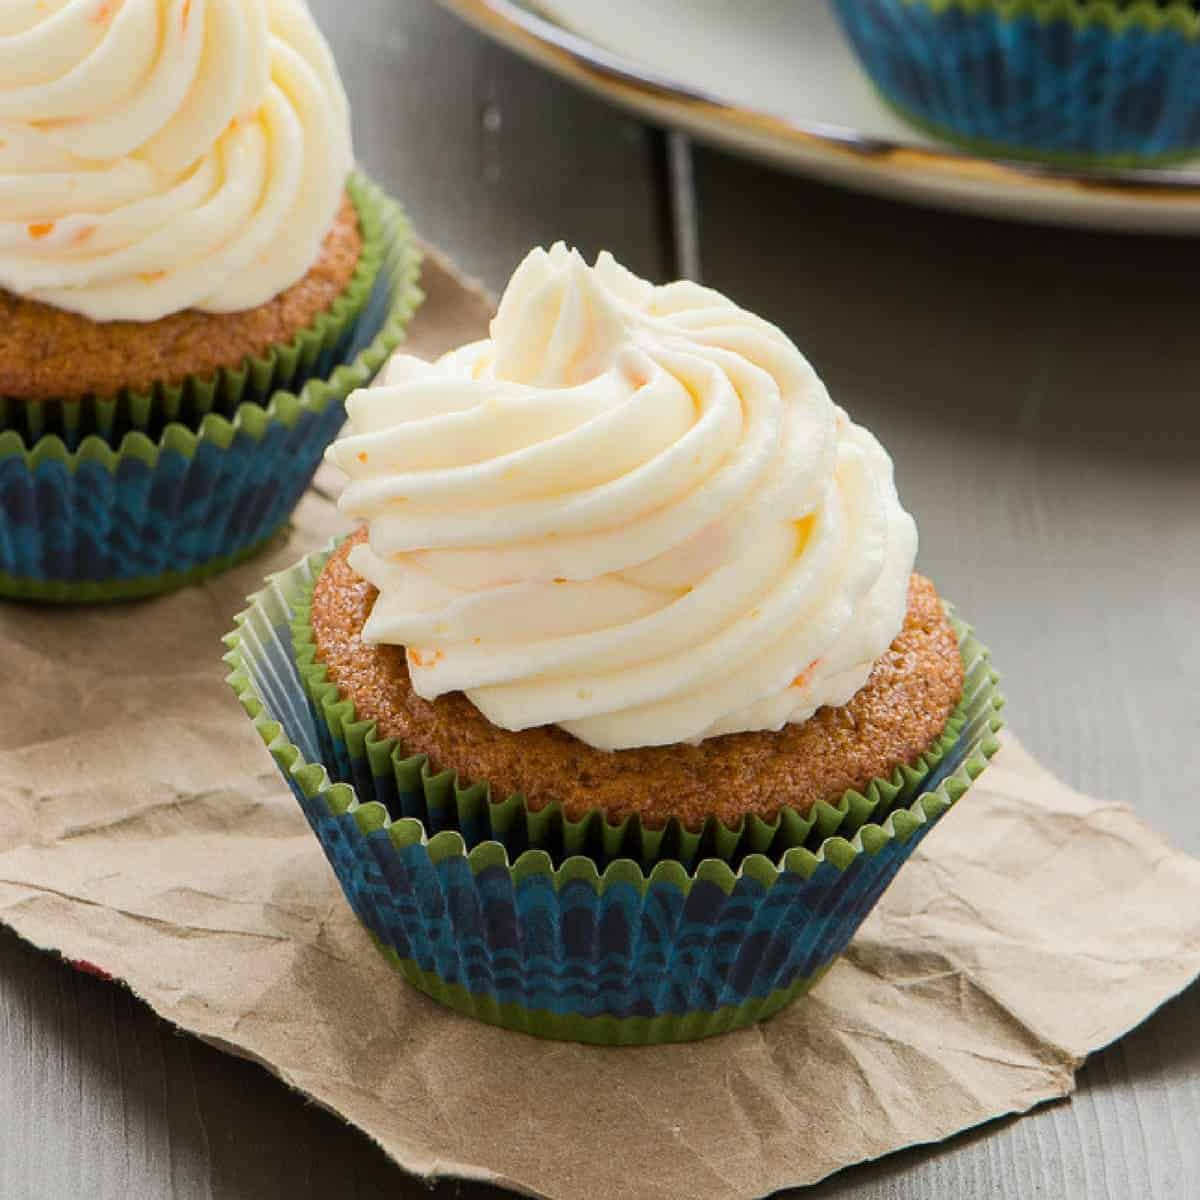 angled view of Gingerbread Cupcakes with Orange Mascarpone Frosting on brown paper